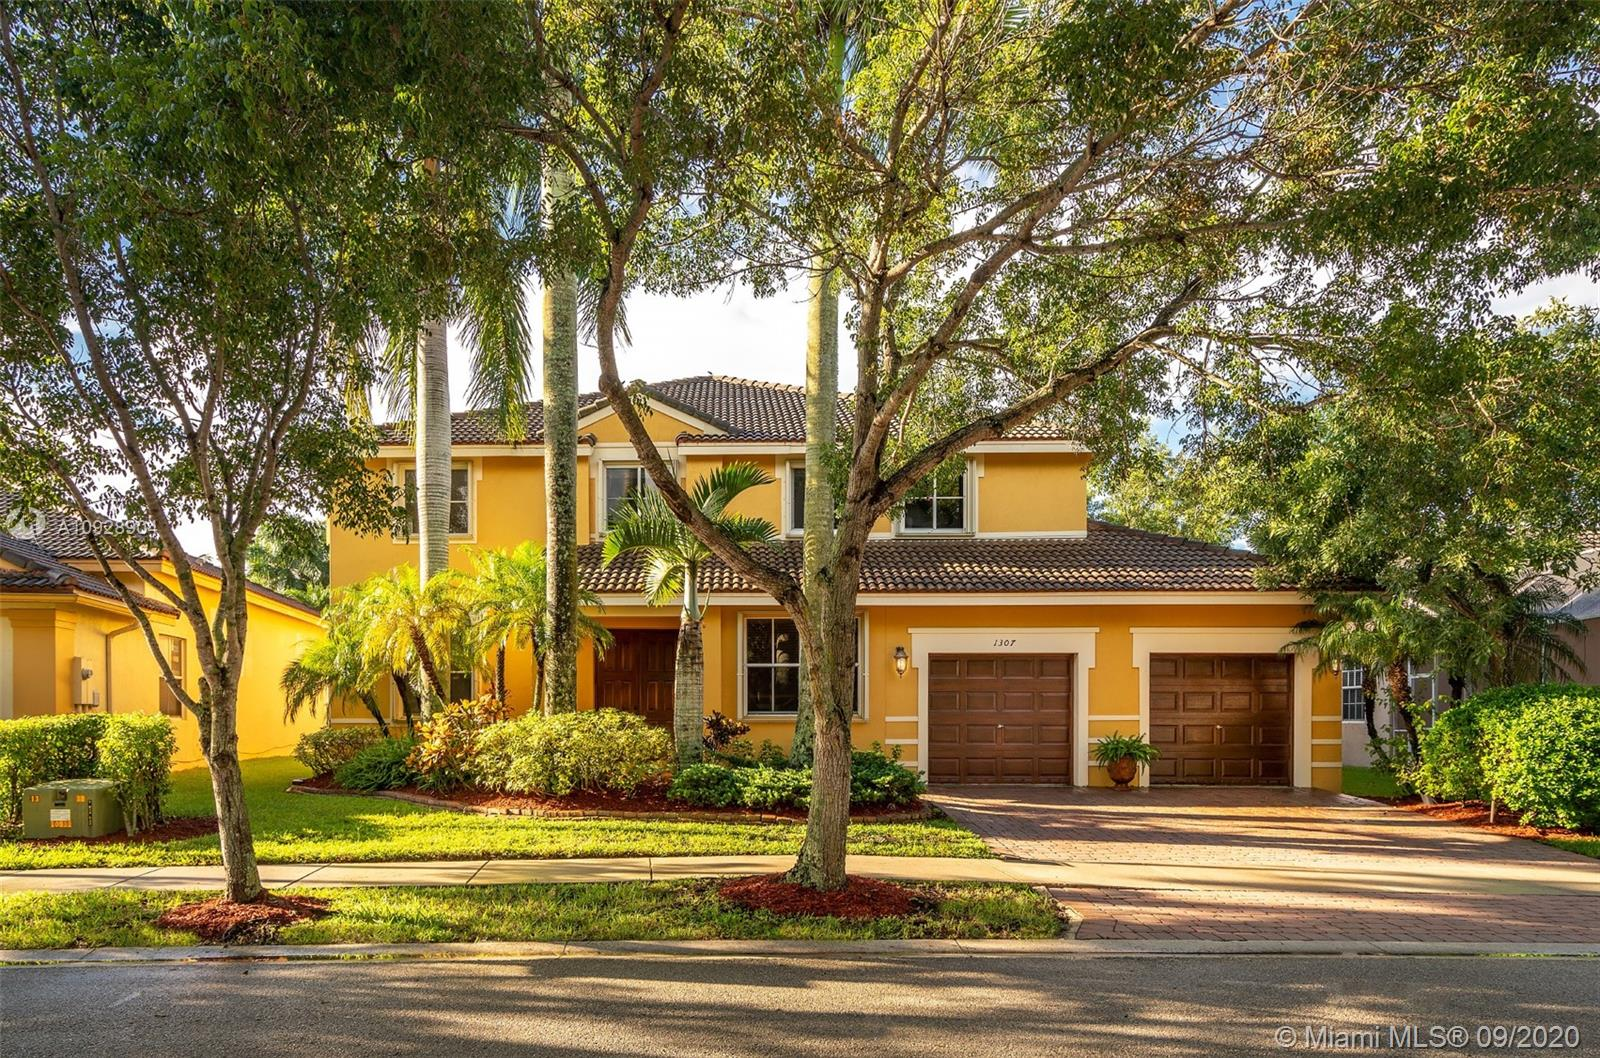 1307  Peregrine Way  For Sale A10928904, FL